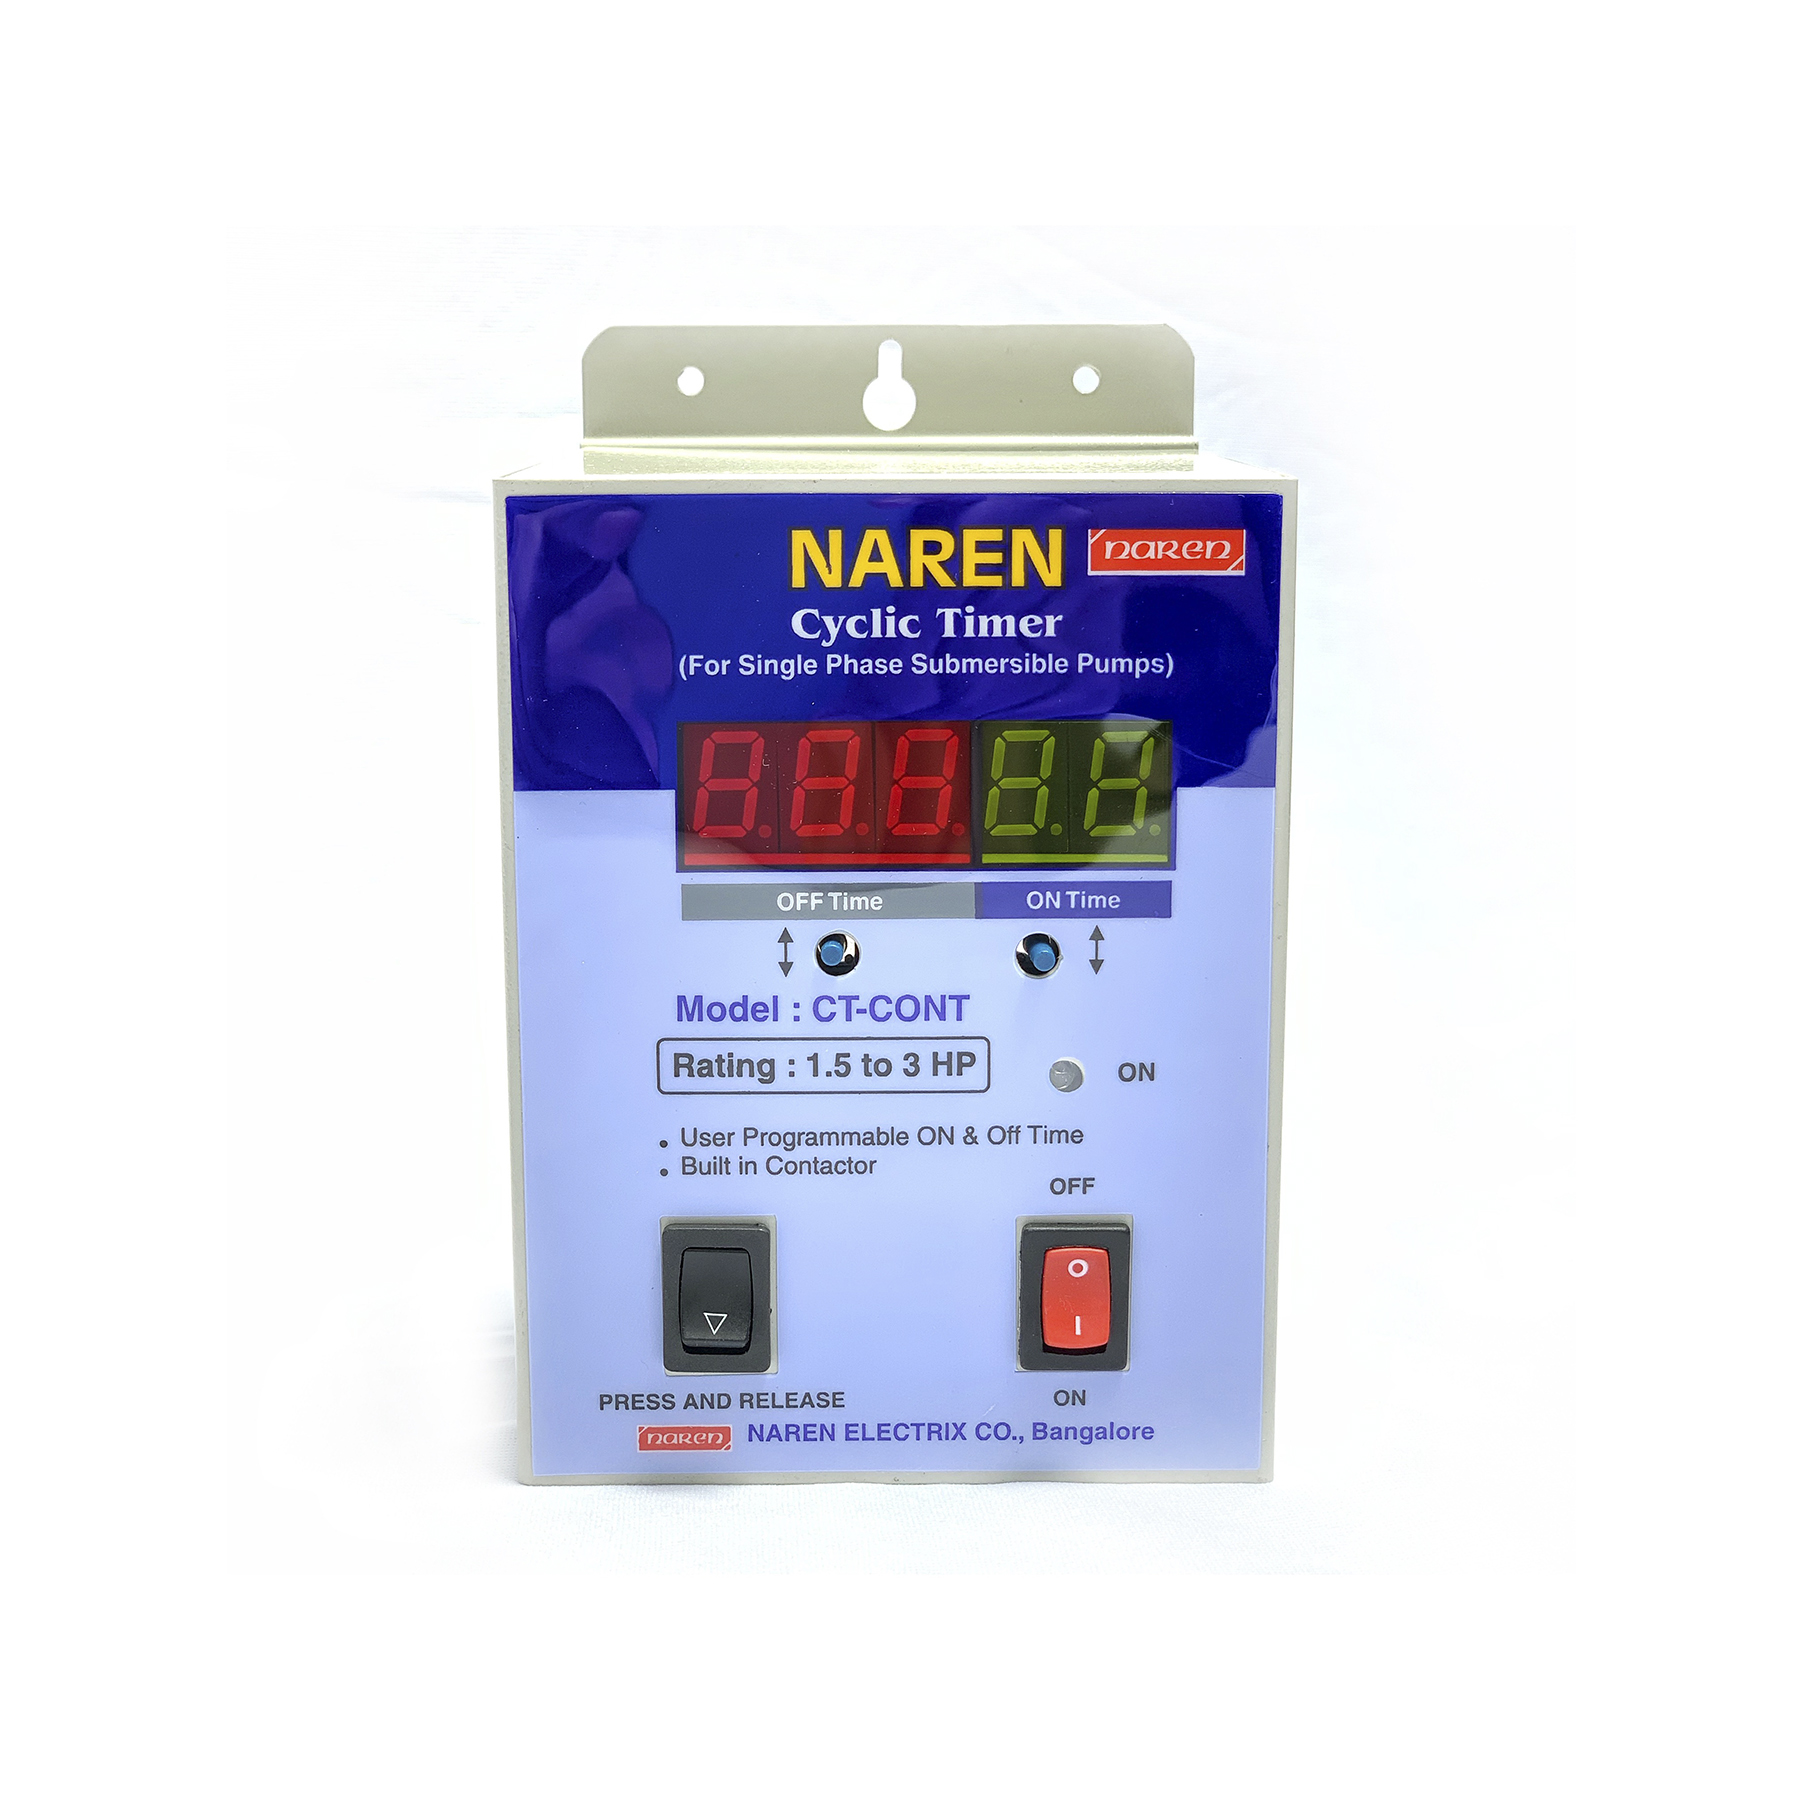 Naren - Cyclic Timer for Single Phase Pumps